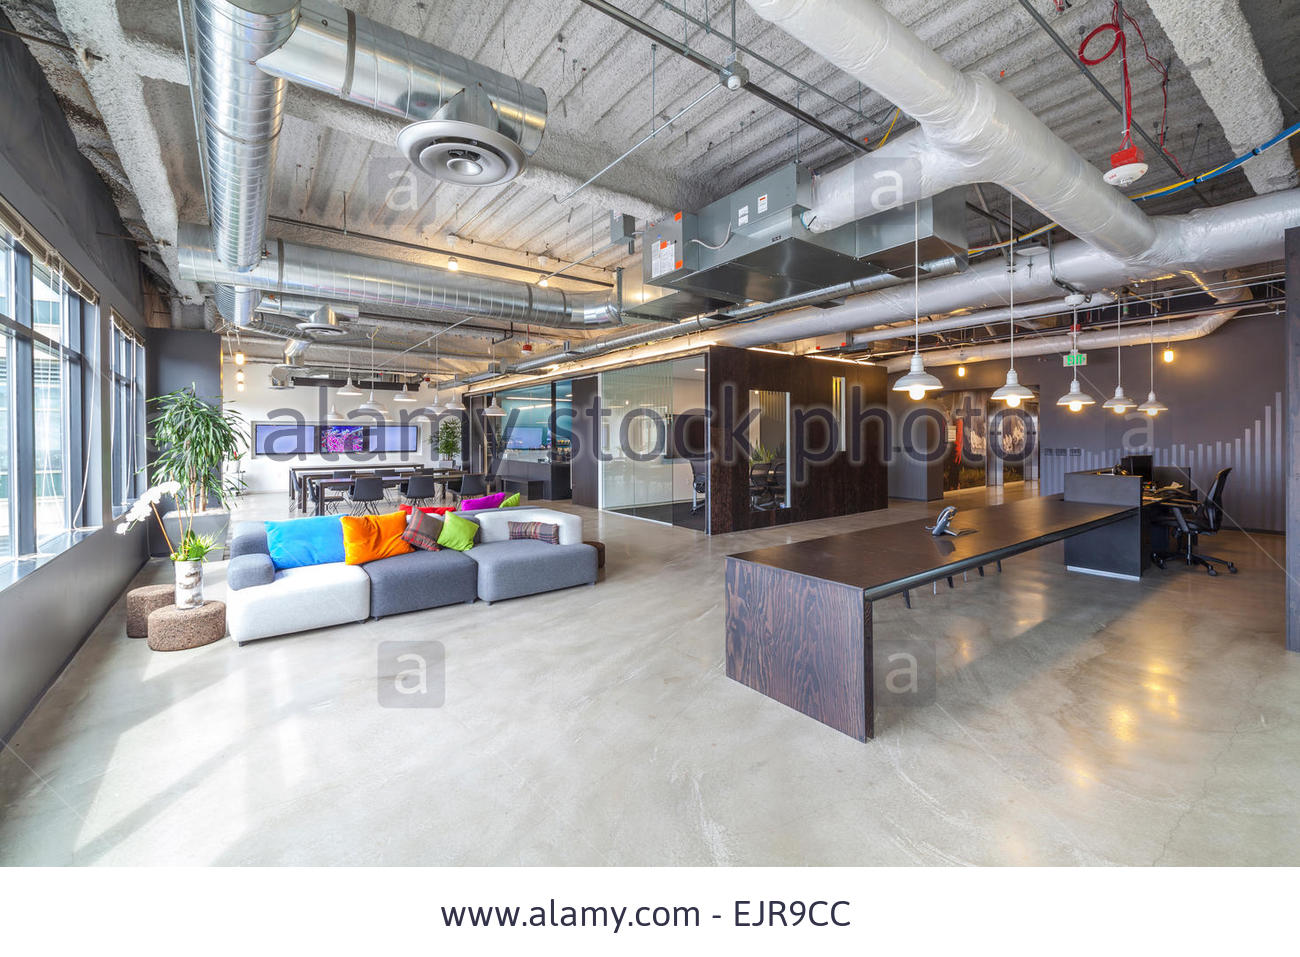 2016-03-20_025512_sofas-in-open-office-seating-area-ejr9cc.jpg